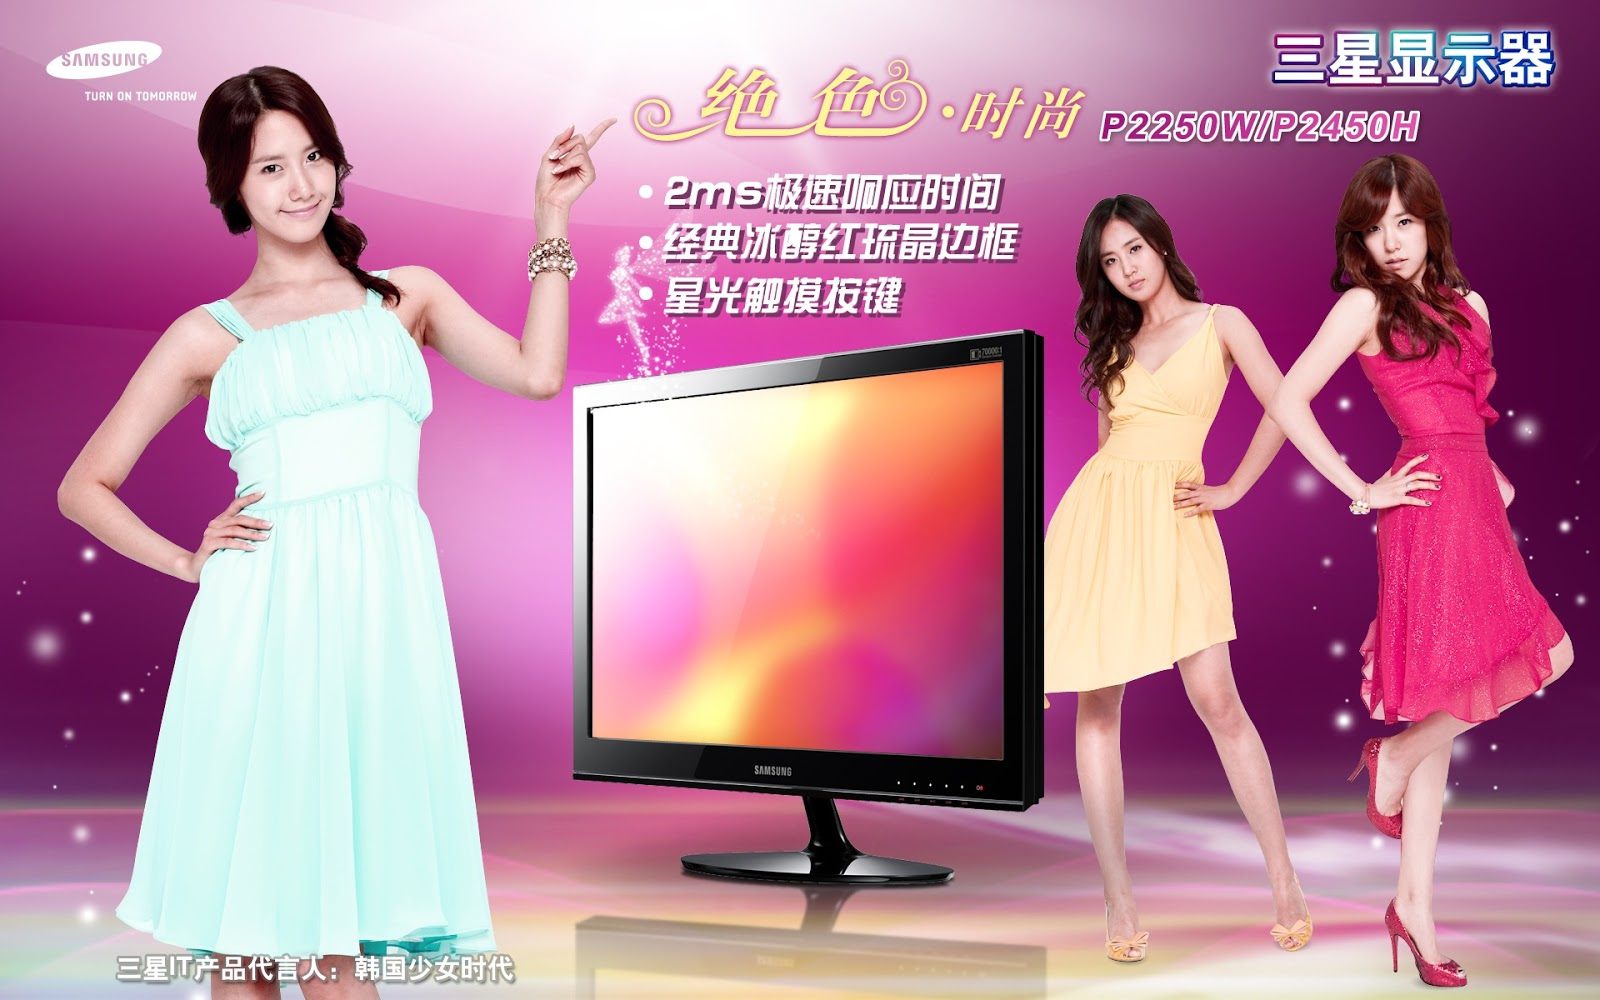 SNSD Samsung China Wallpaper HD & Pics Pictures 이미지 画像